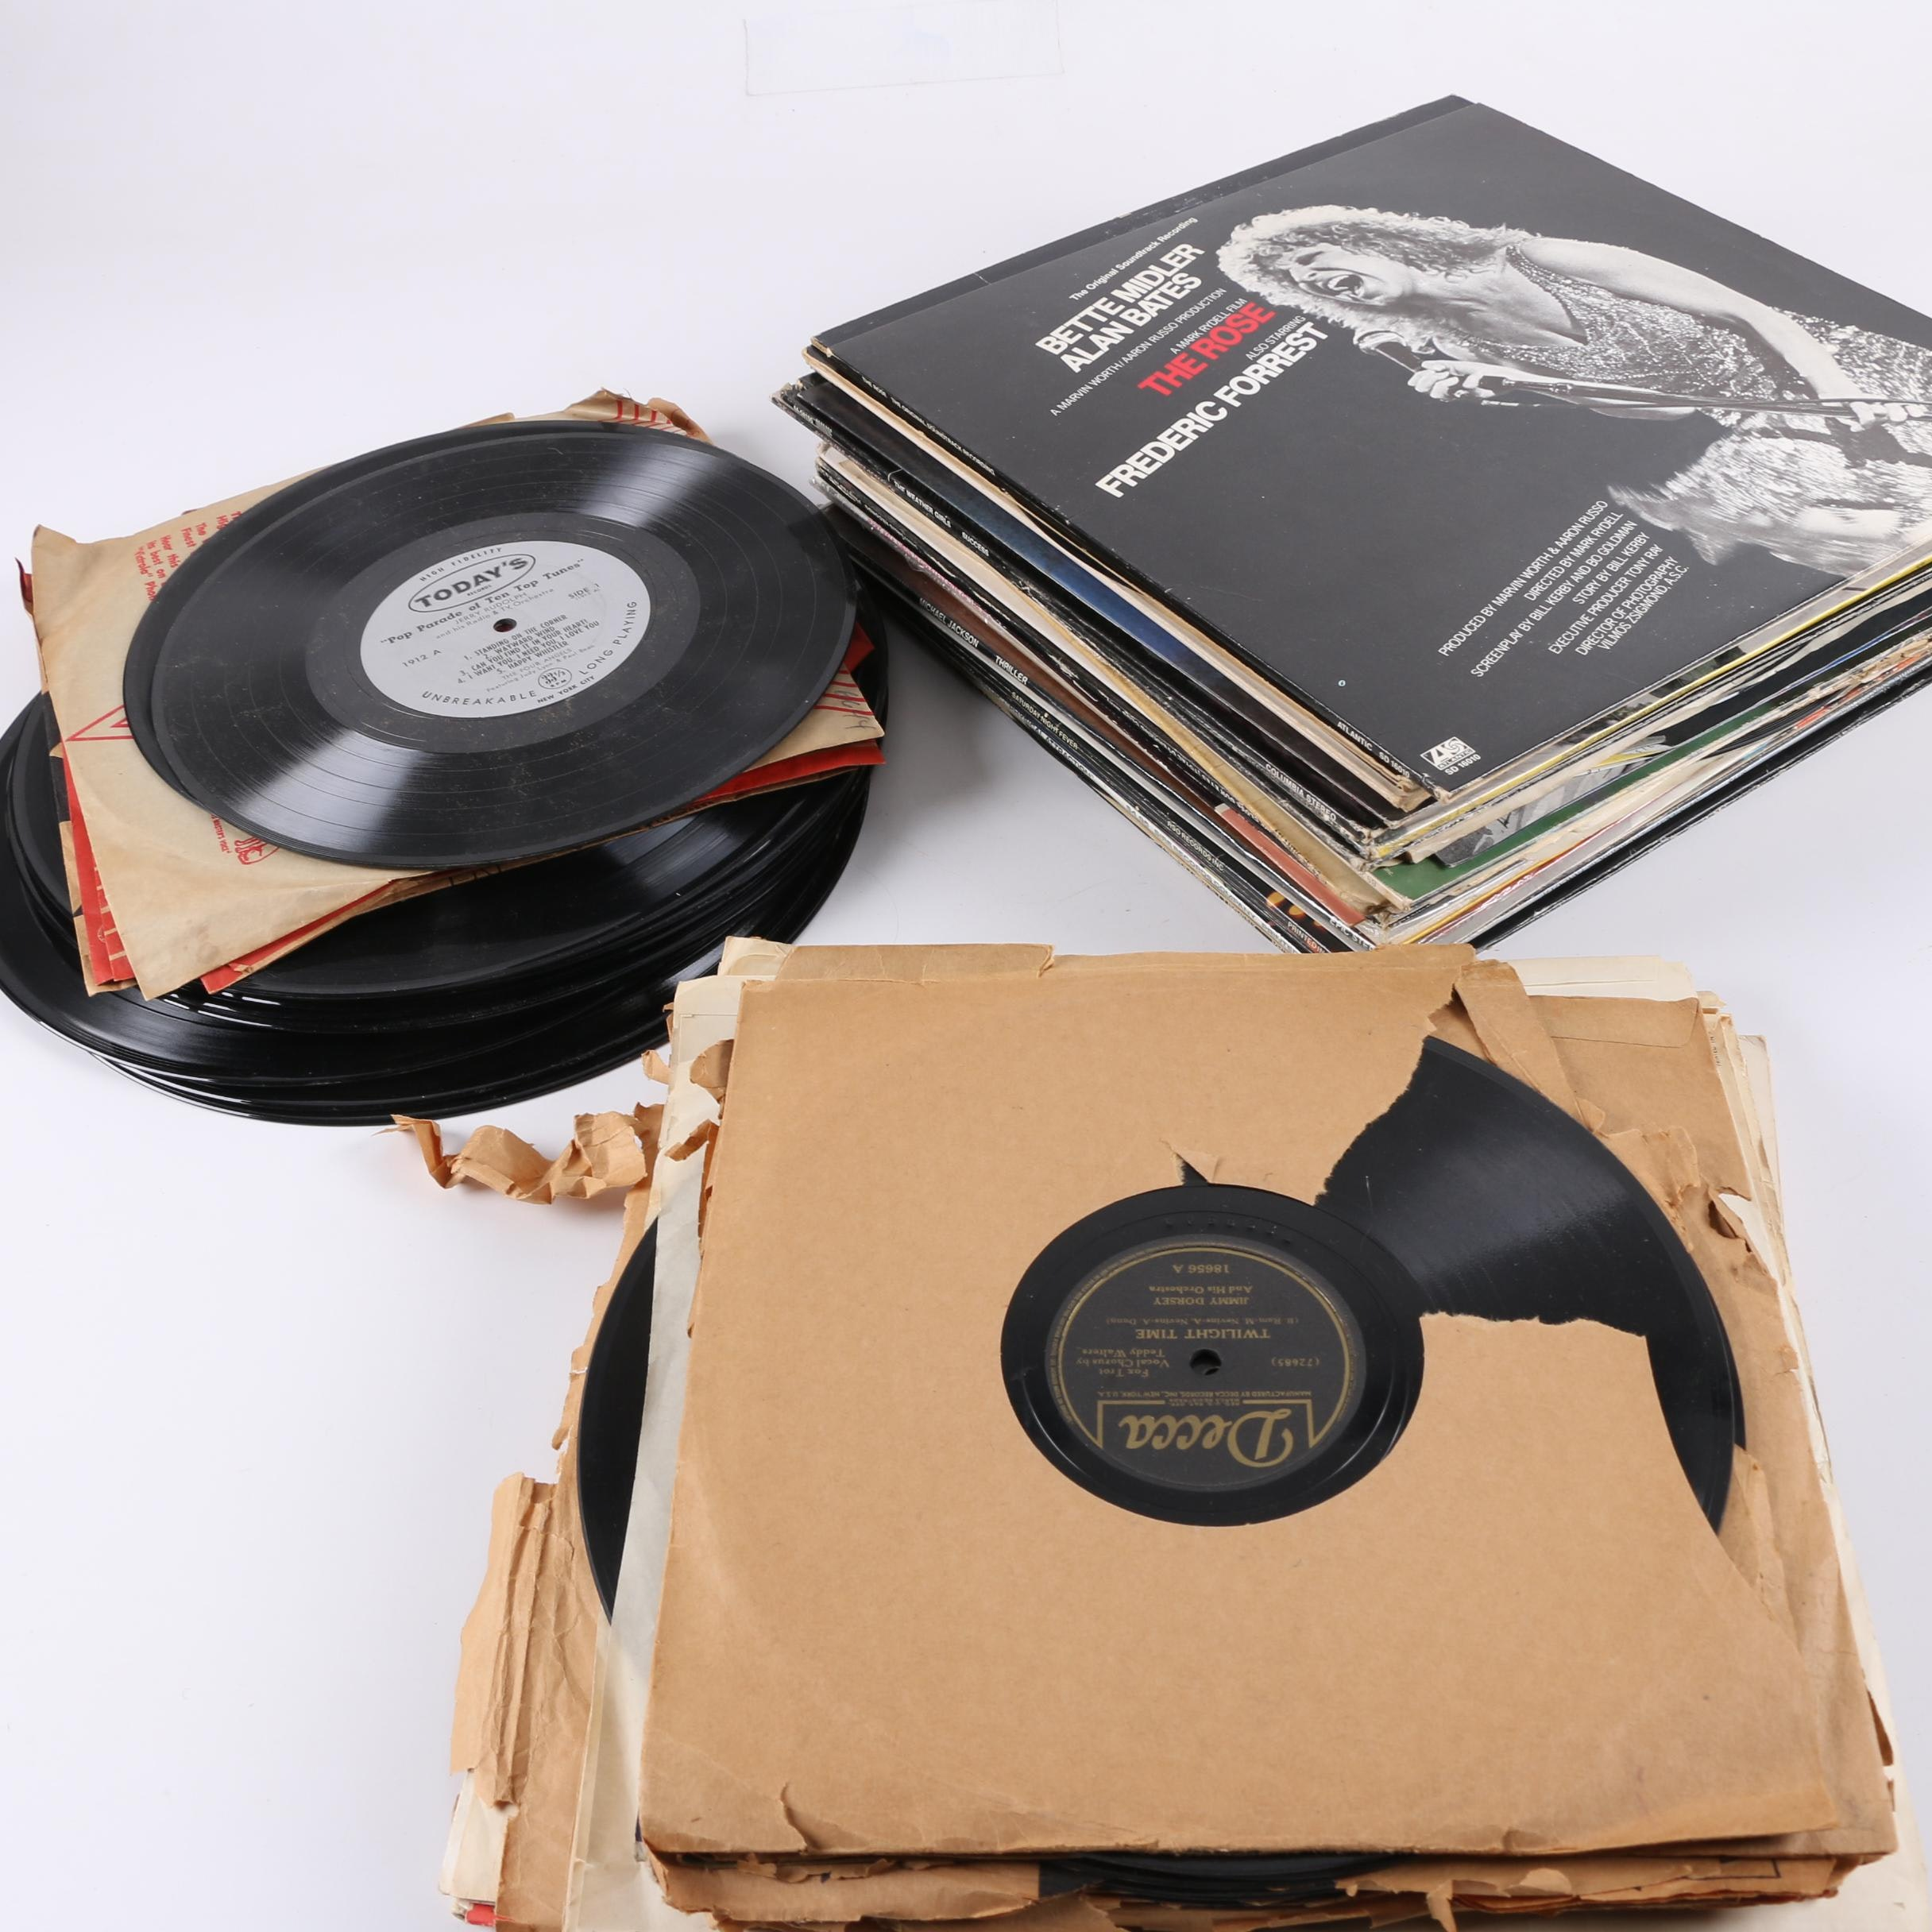 Prince, Bette Midler, Michael Jackson and Other Assorted LPs